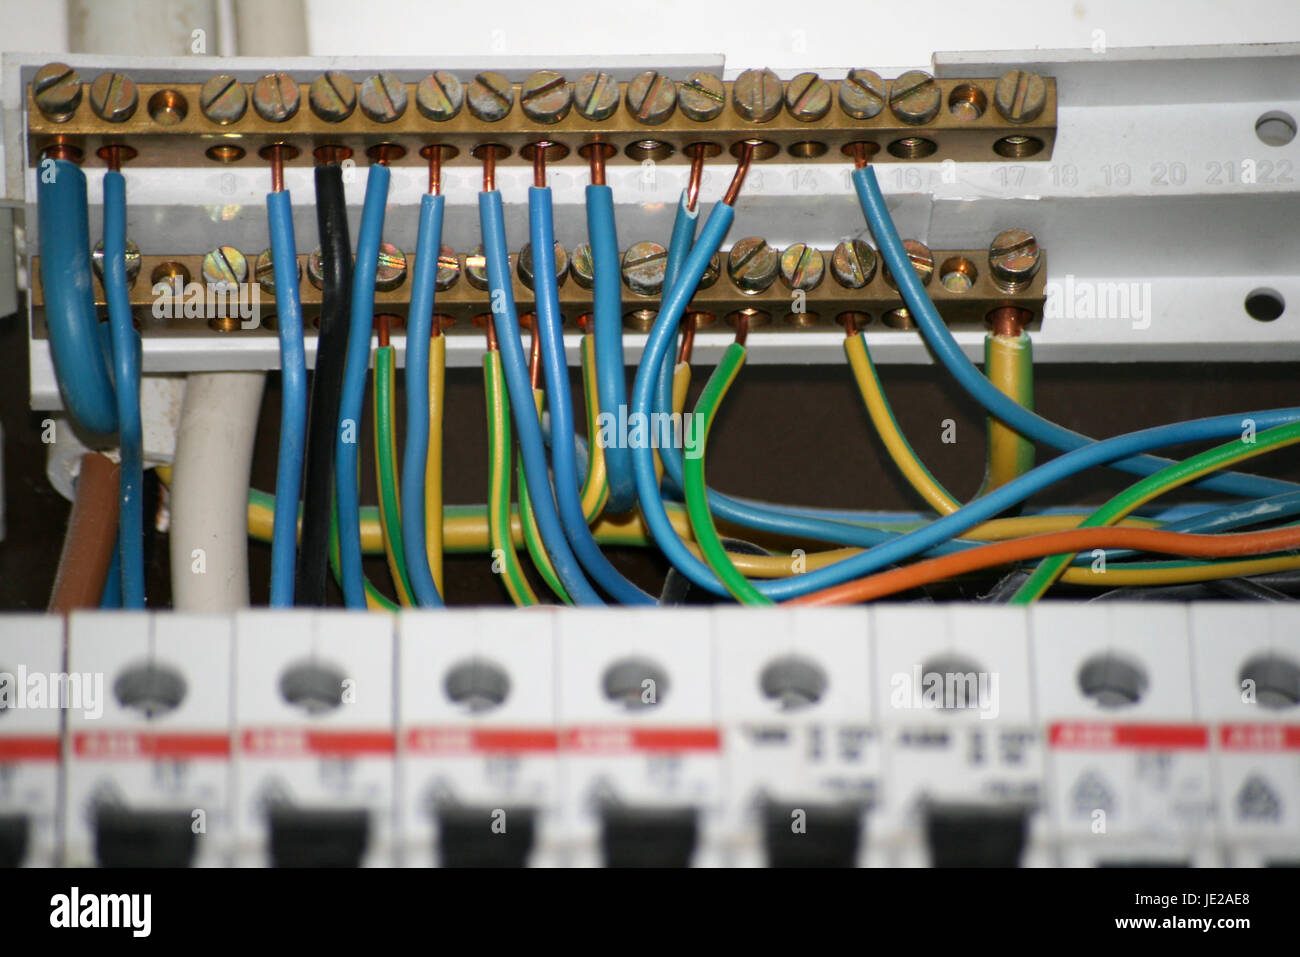 Switch Box Stock Photos Images Alamy How To Wire A Wires Of An Old Image